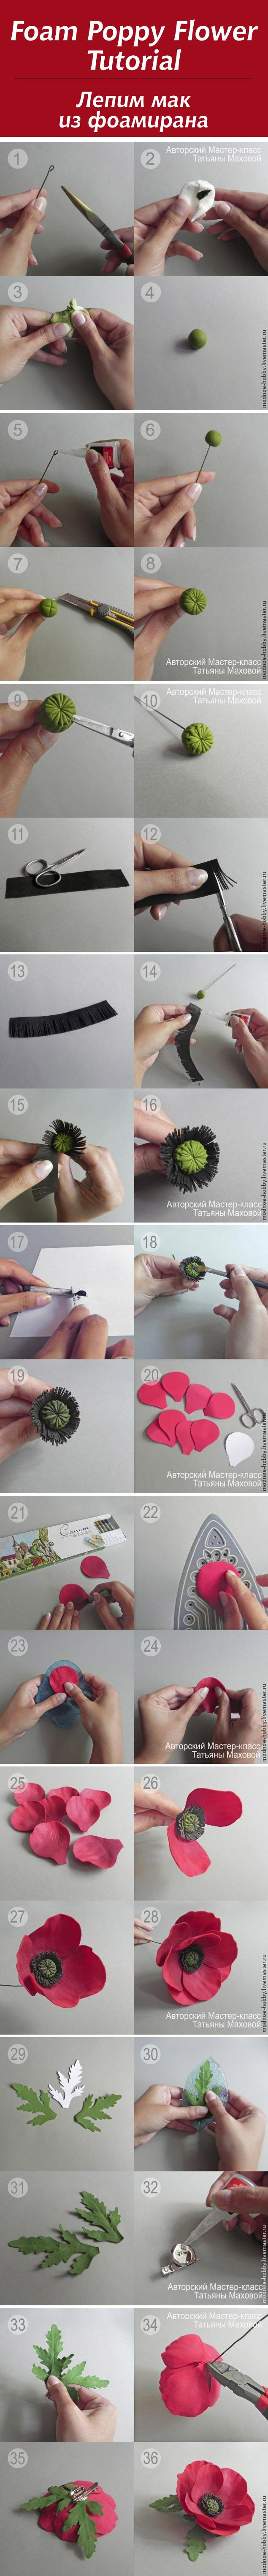 Foam Poppy Flower Tutorial / Лепим цветок мака из фоамирана #diy #tutorial #howto #foam #foamiran #modeling #flower #poppy #red